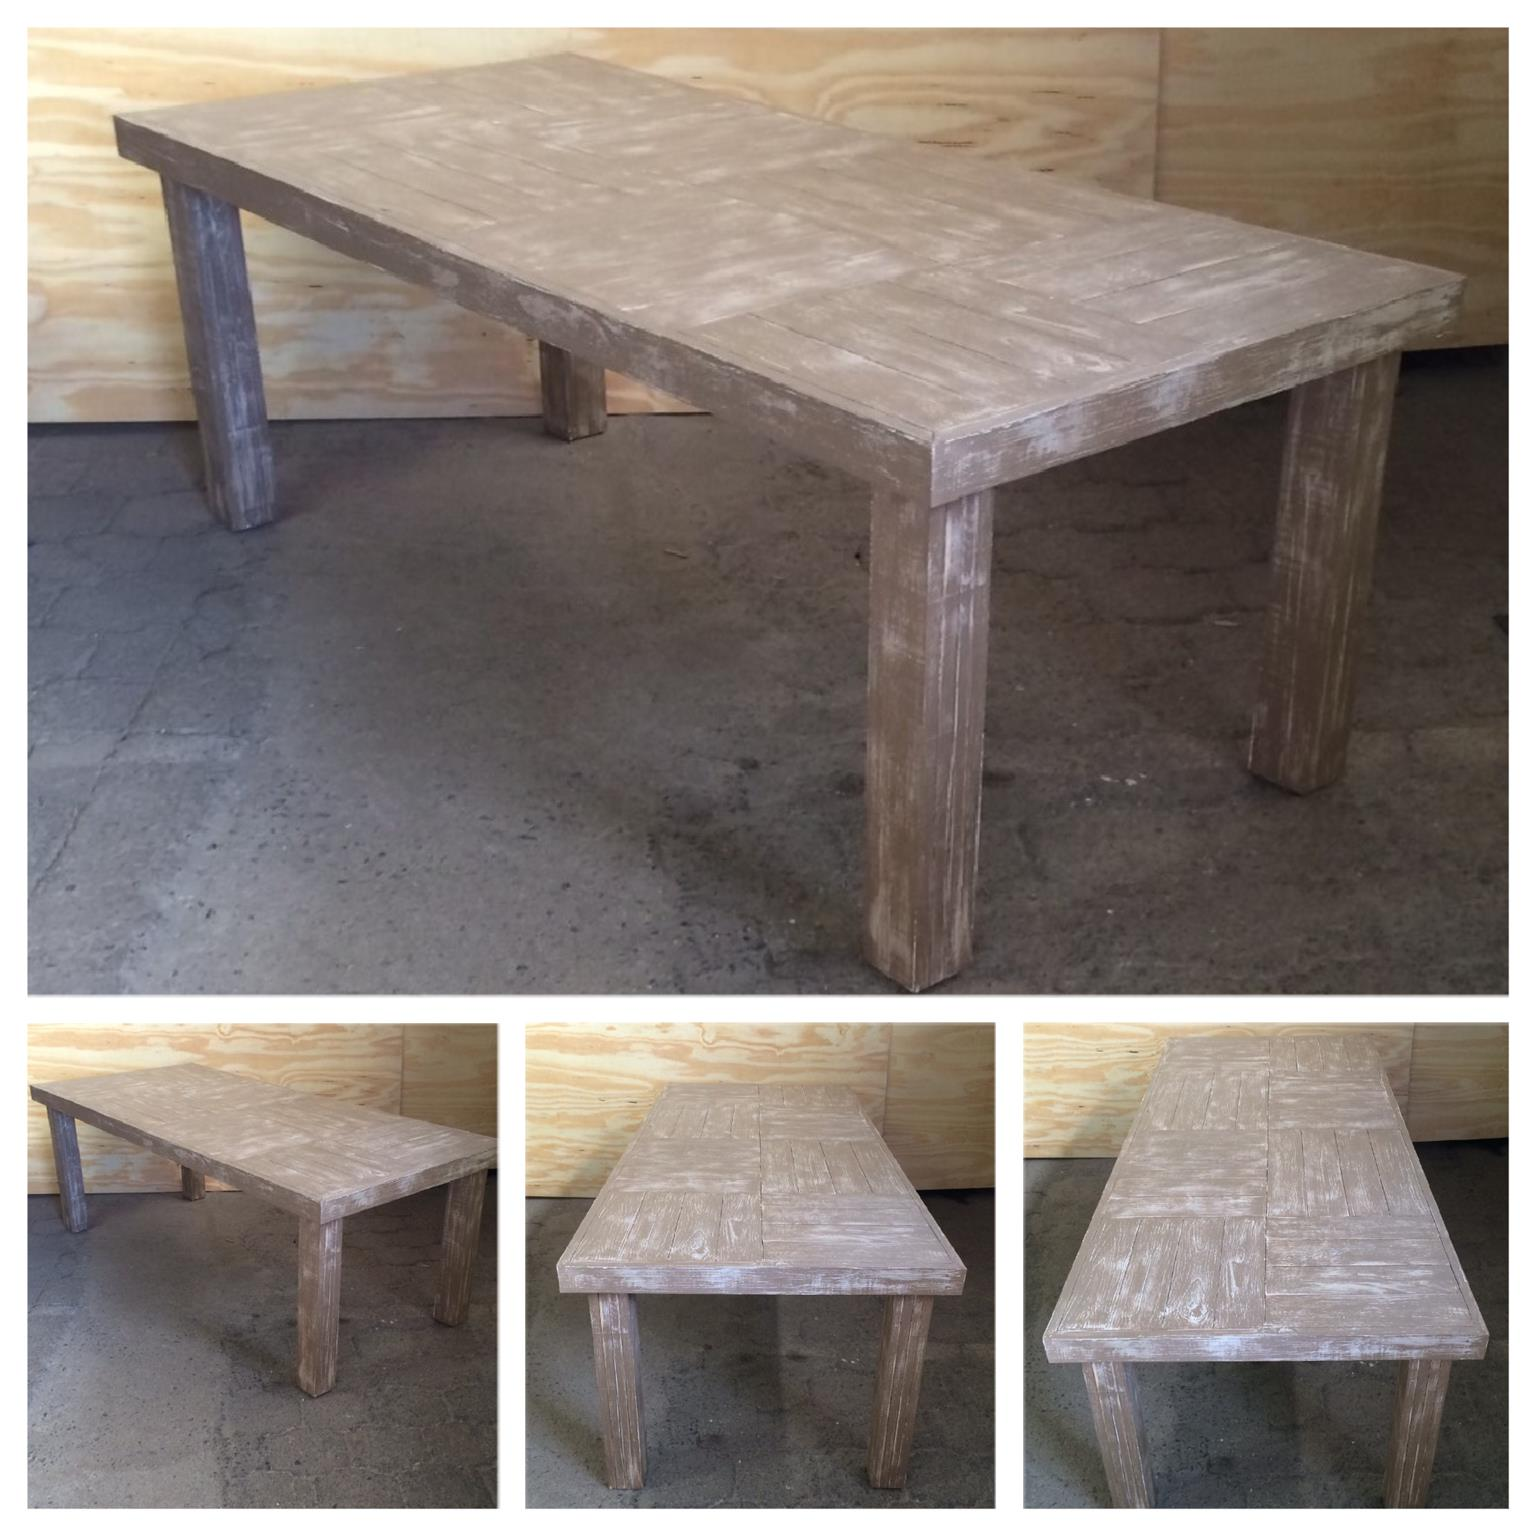 Patio table Farmhouse series 2100 Weathered look